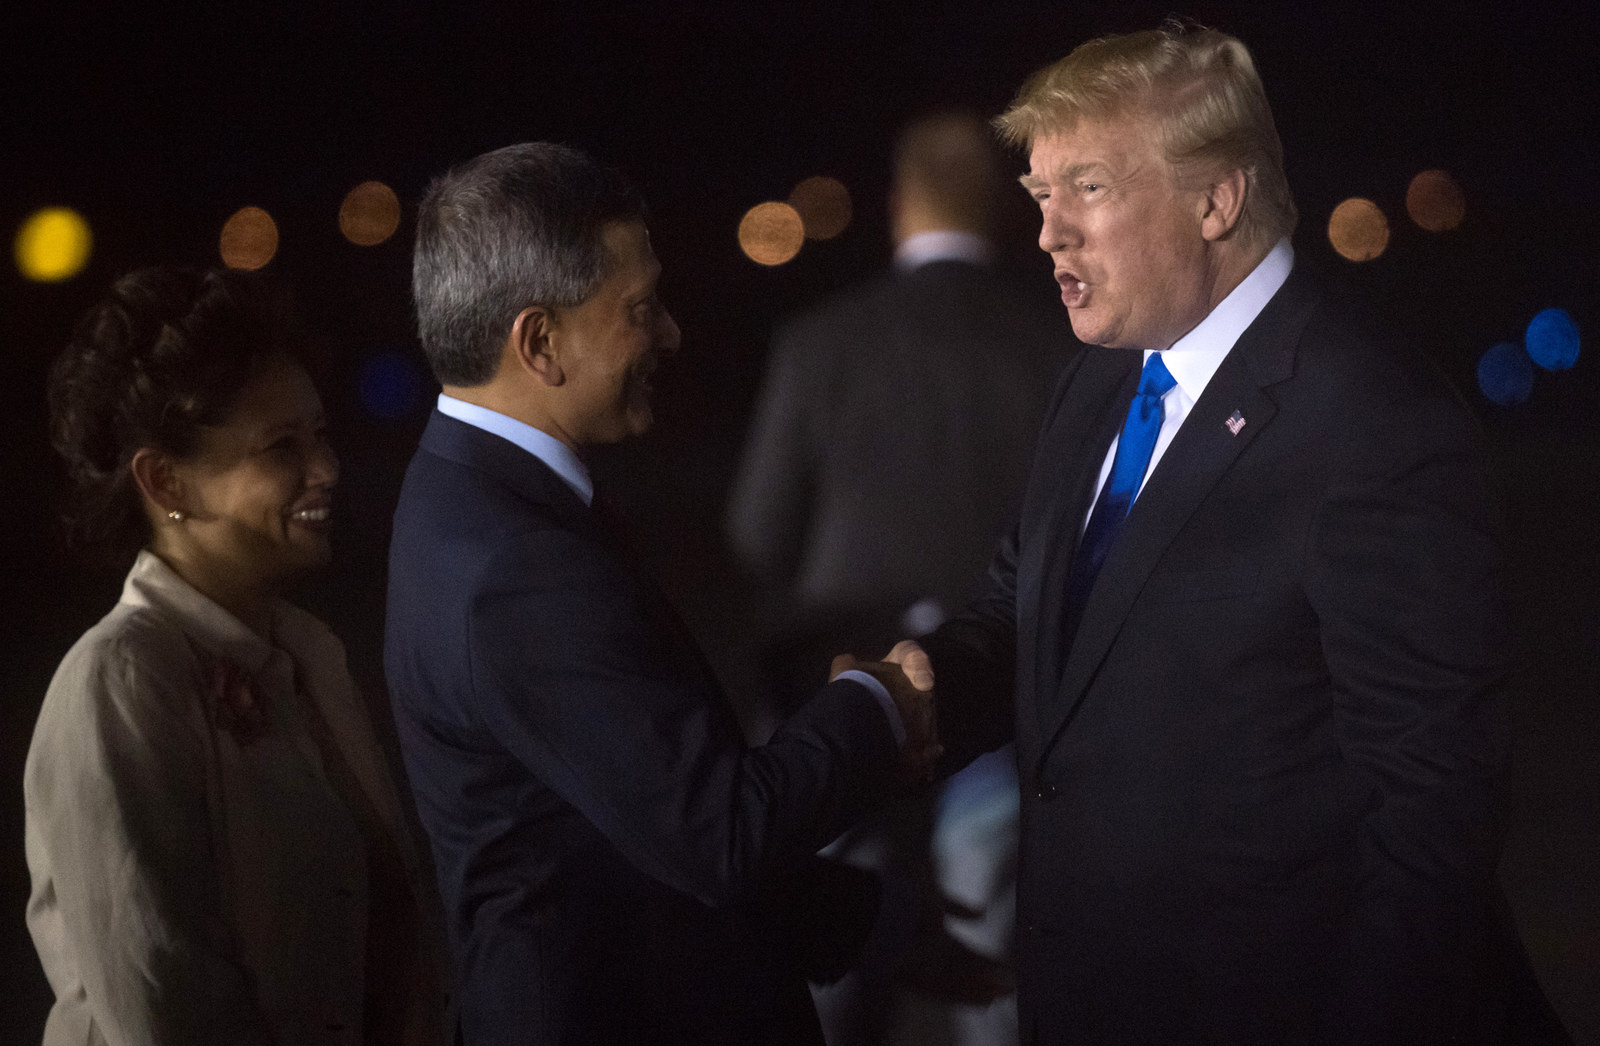 Donald Trump is welcomed by Singapore's Foreign Minister Vivian Balakrishnan upon his arrival Sunday for his historic meeting with Kim Jung Un.